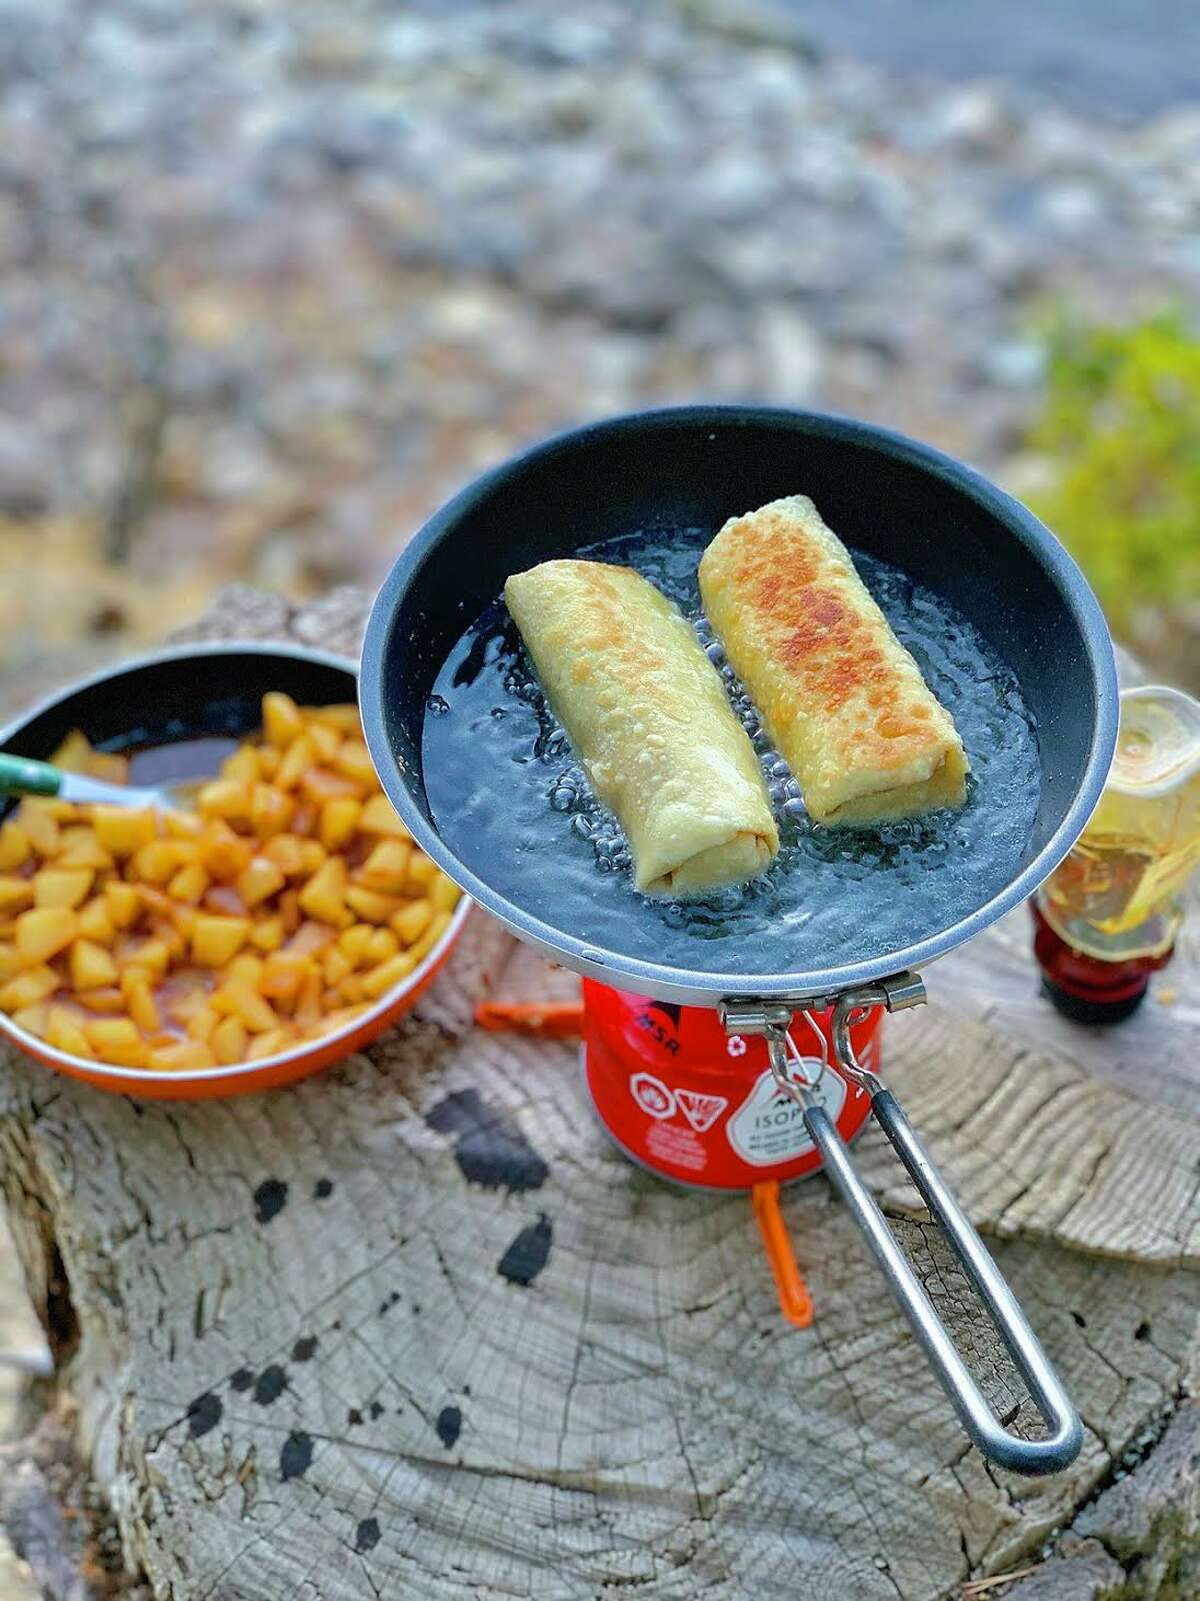 A meal prepared in the wild by Kena Peay.